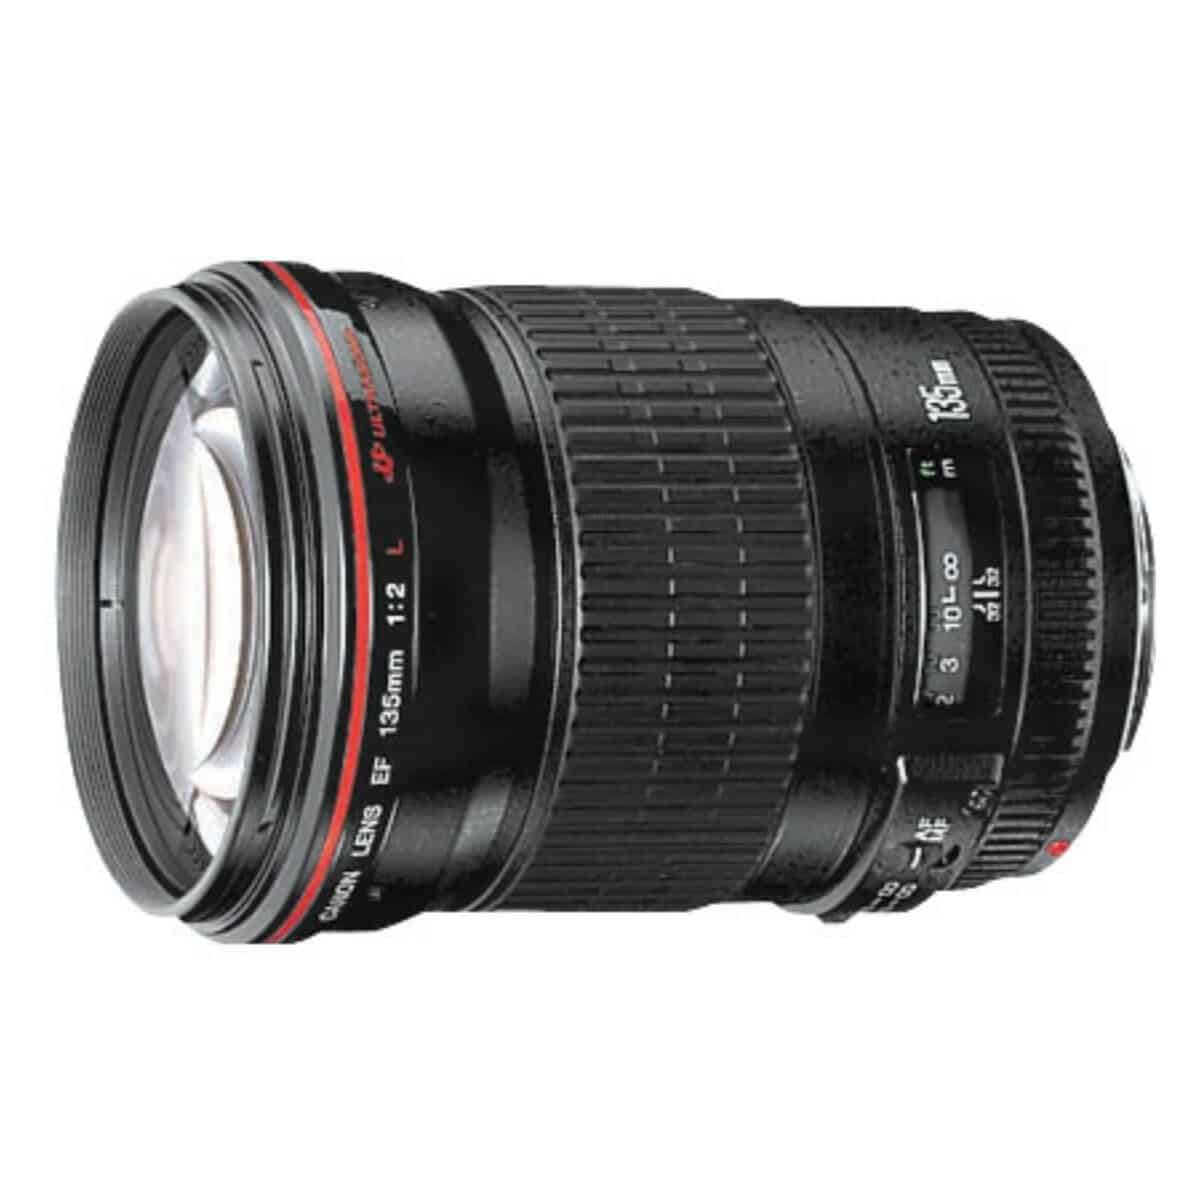 Side view of the Canon 135mm f/2 telephoto lens.